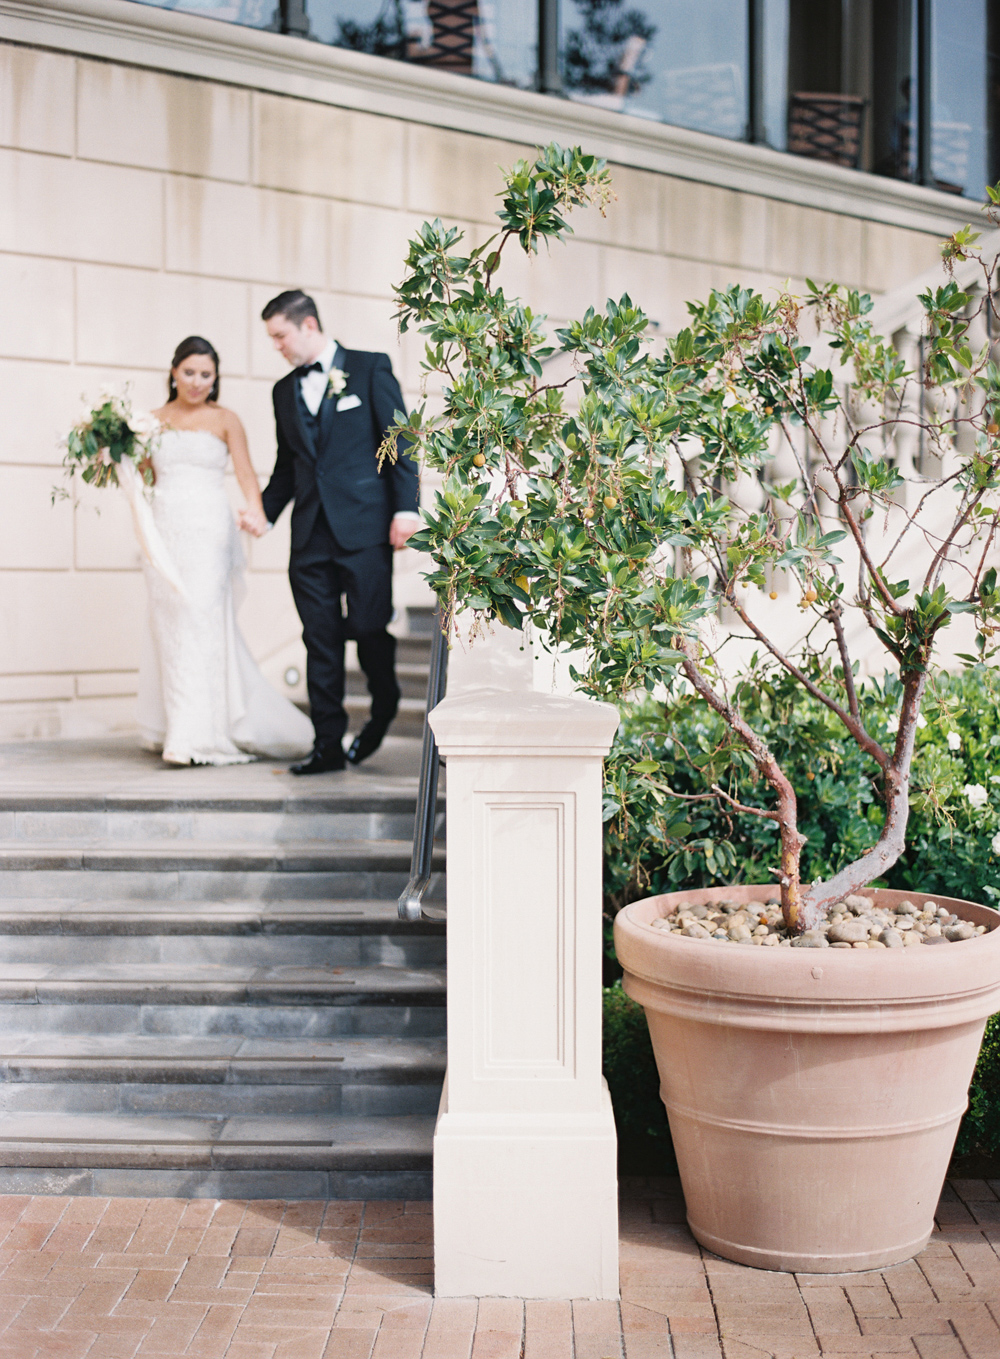 020-pelicanhill_wedding_ashleykelemen.jpg